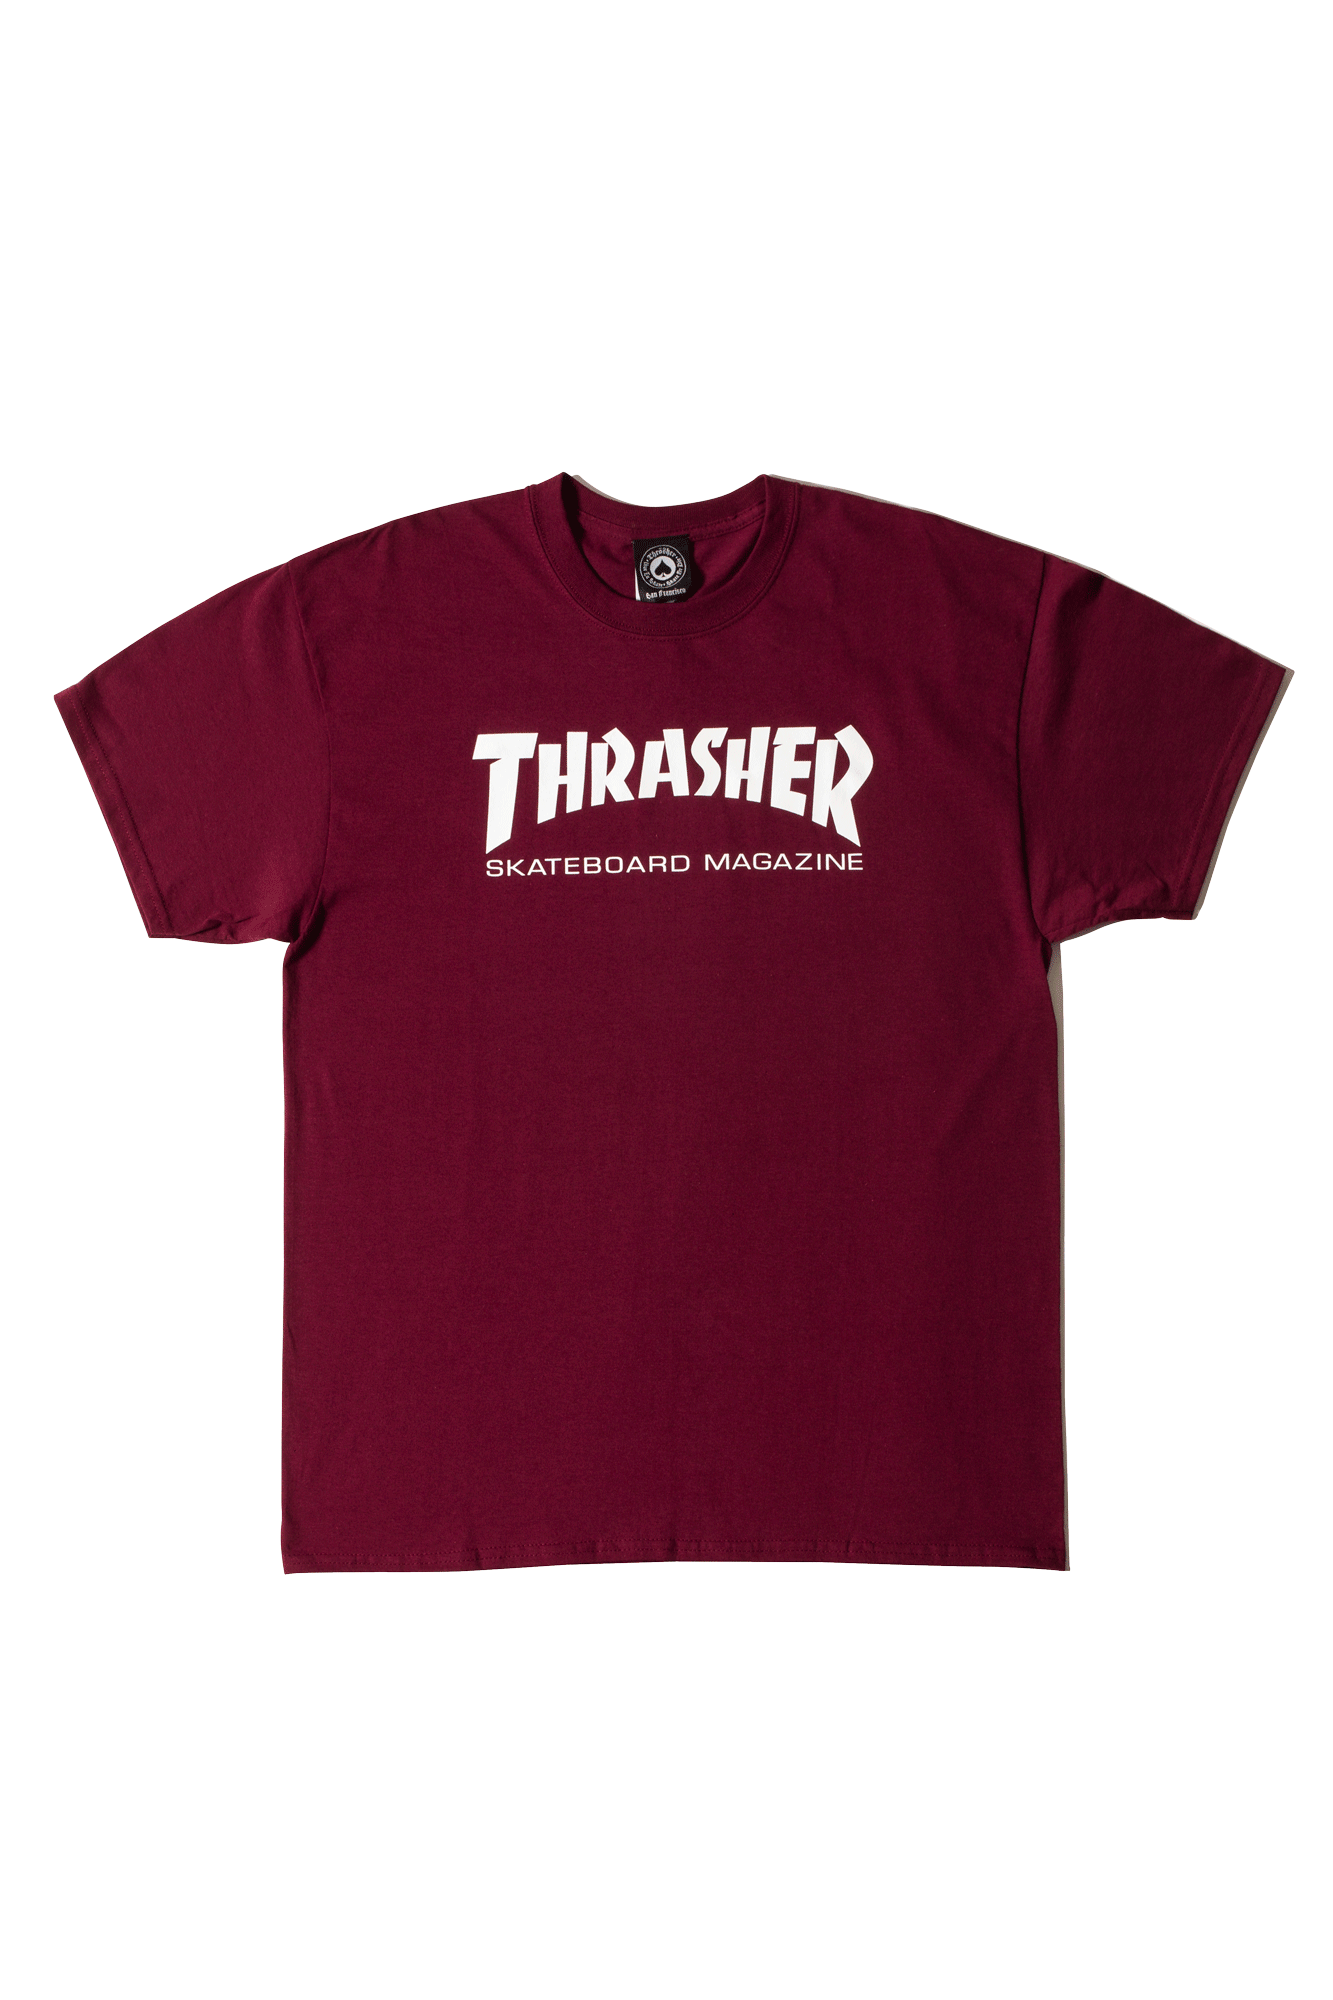 Thrasher T-Shirts Skate Mag Viola 311027#000#PURPLE#S - One Block Down